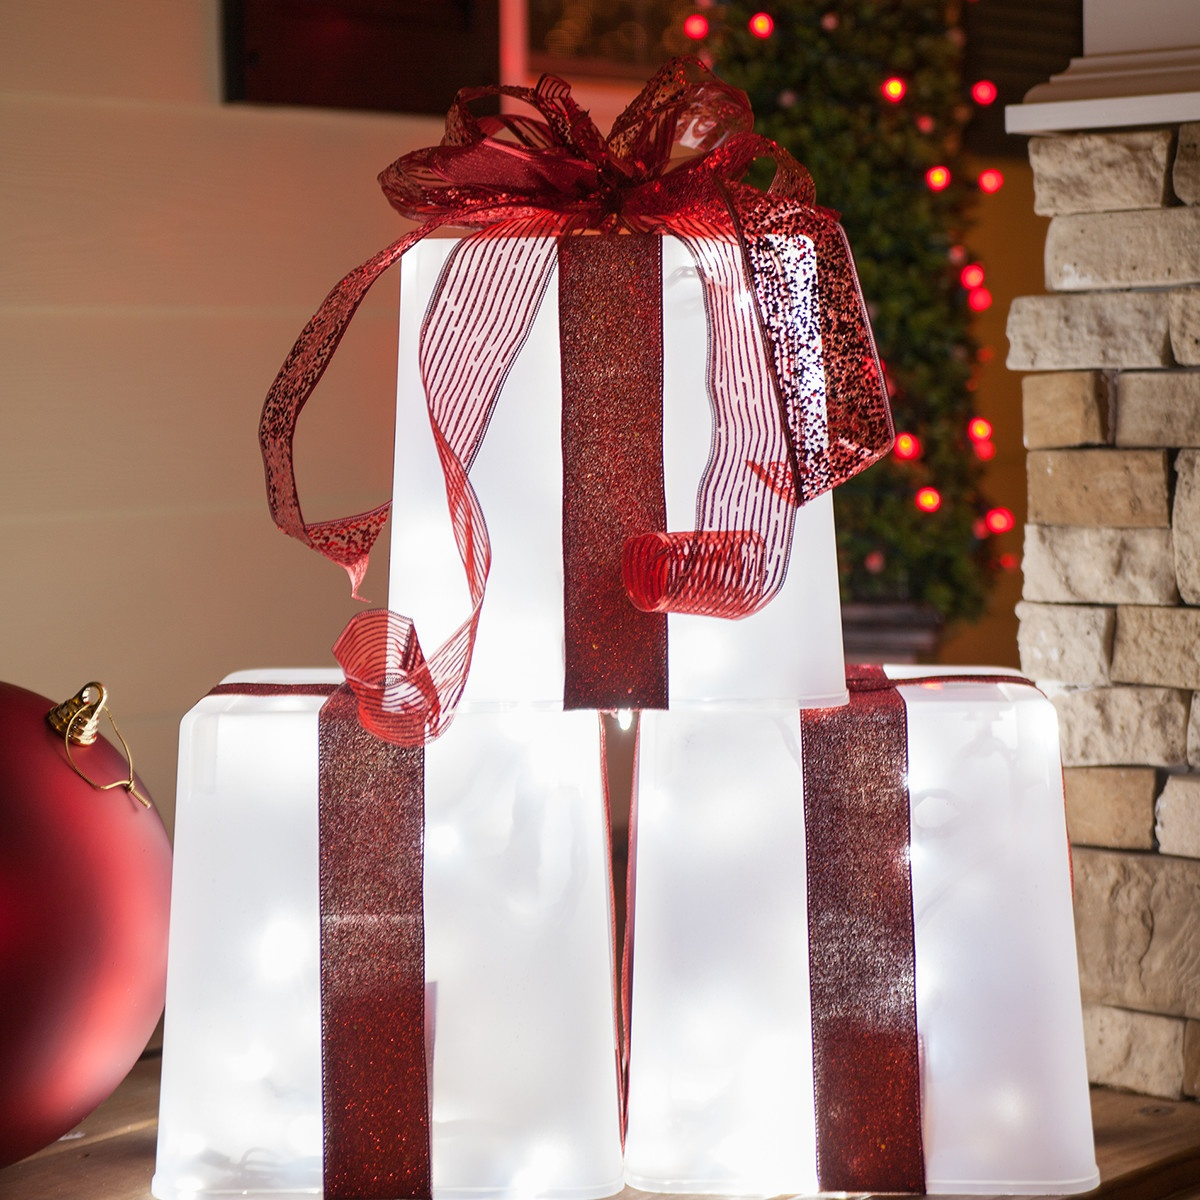 create diy lighted gift boxes using plastic containers string lights and christmas ribbon - Lighted Gift Boxes Christmas Decorations